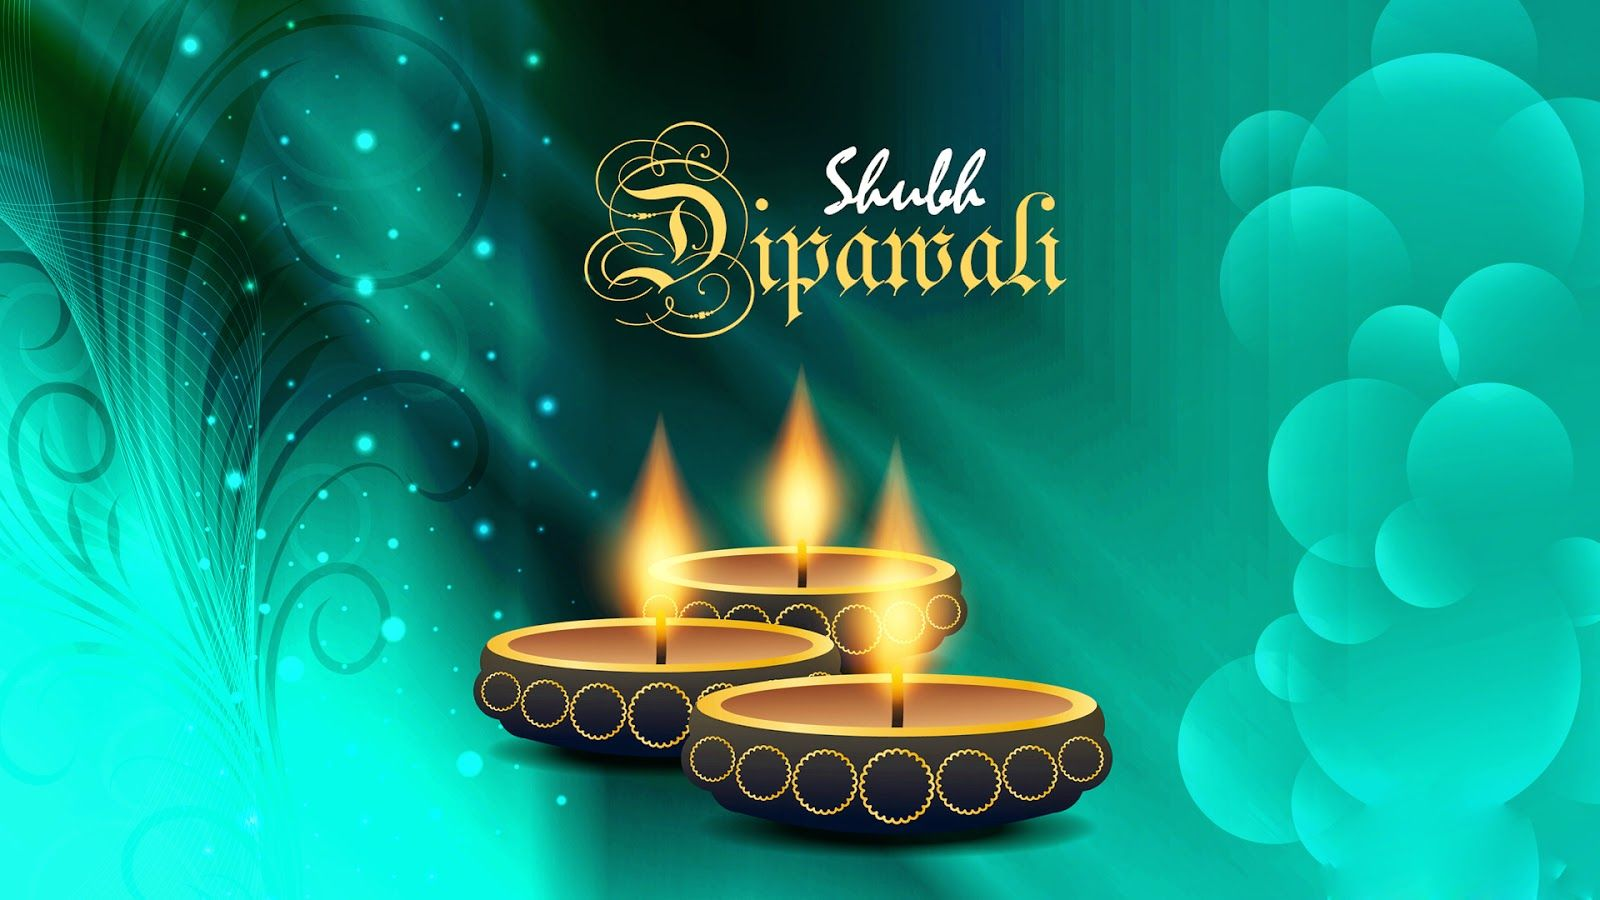 Hd Happy Diwali Wallpapers 2016 Deepavali Wallpapers Downlaod